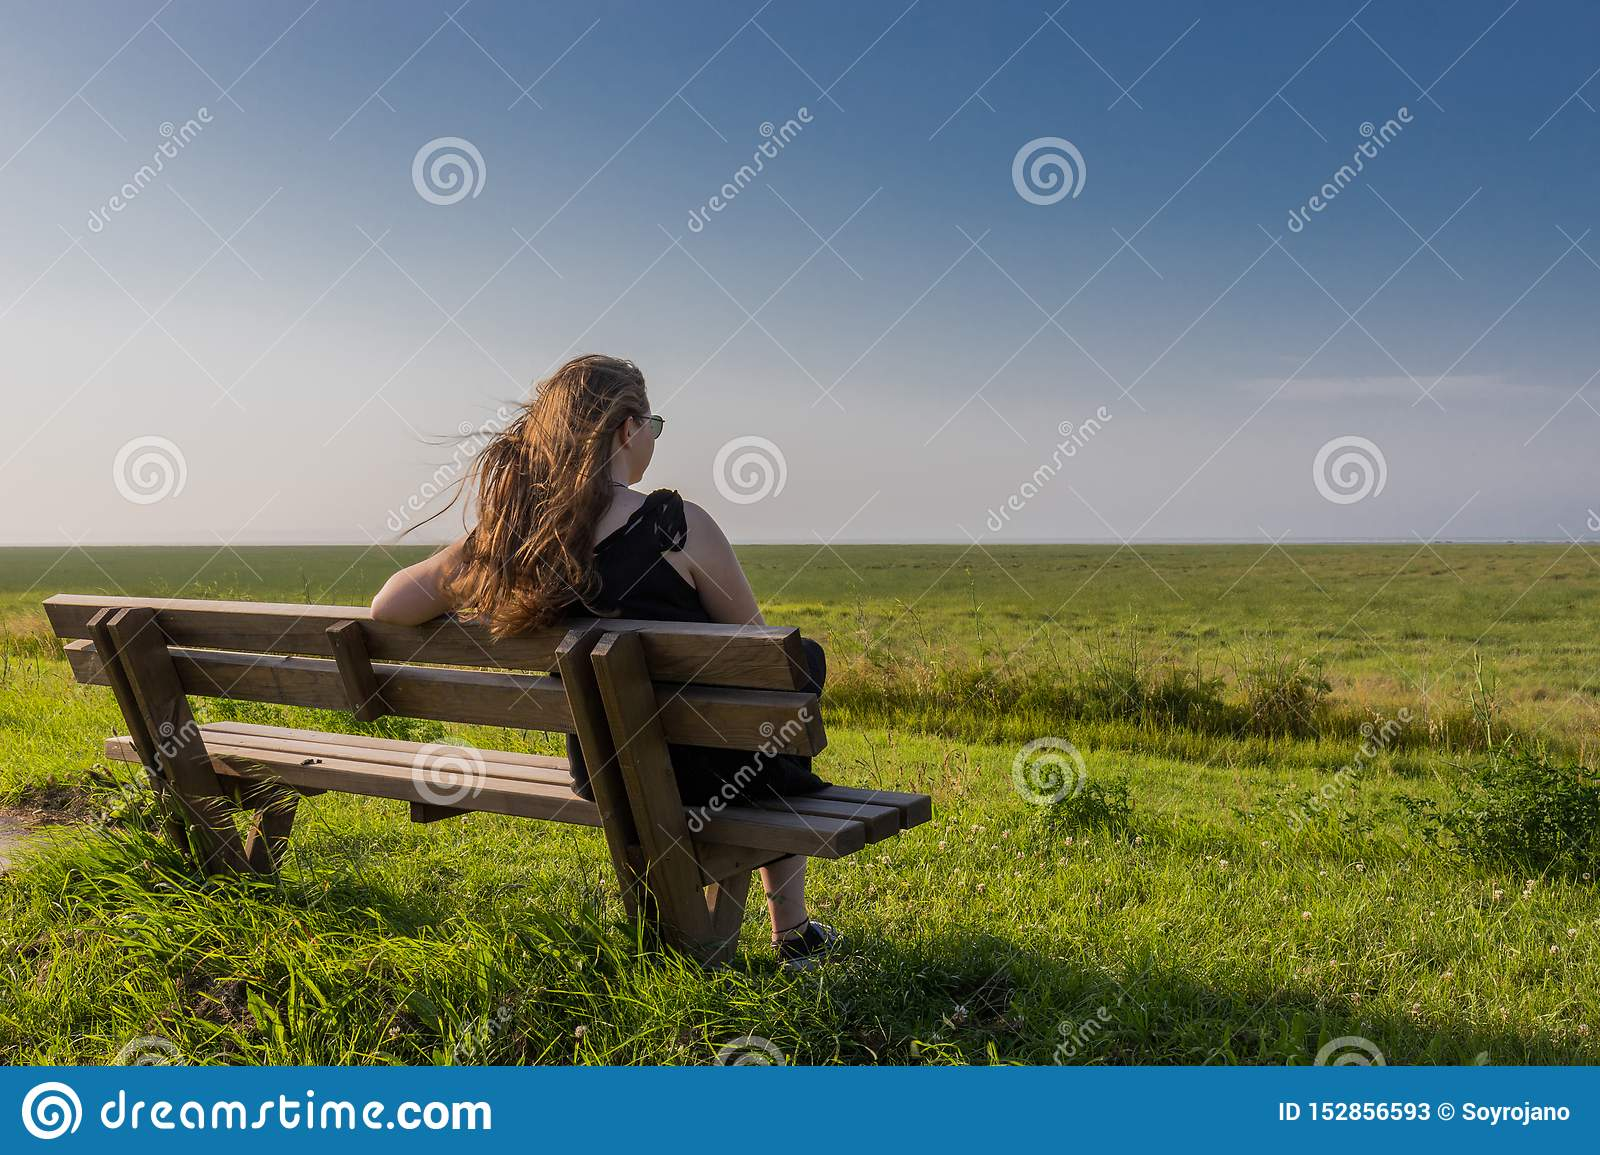 Blonde girl sitting on a bench